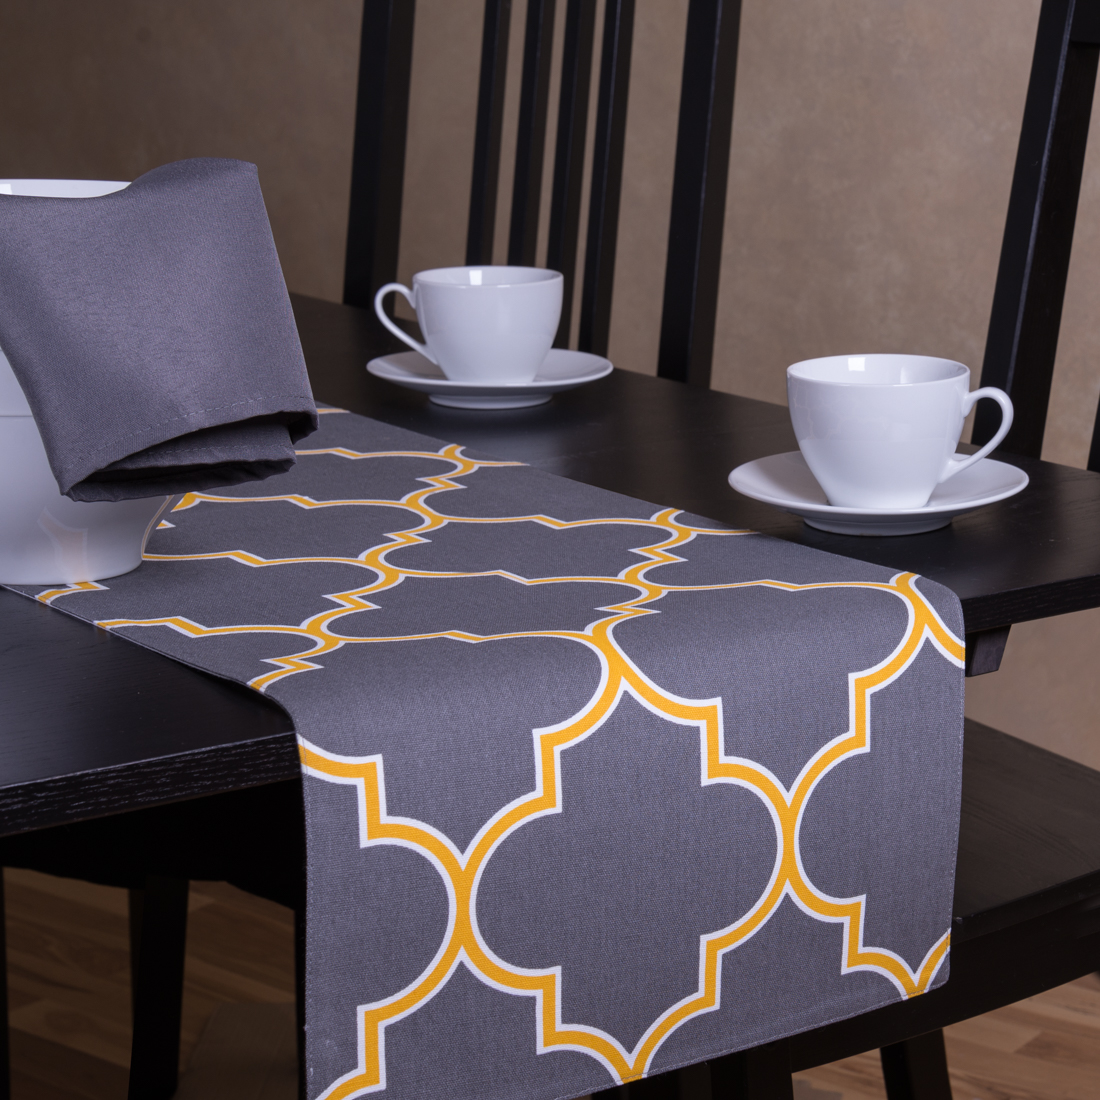 13 x 90 in. Charcoal & Mustard Yellow Trellis Table Runner by